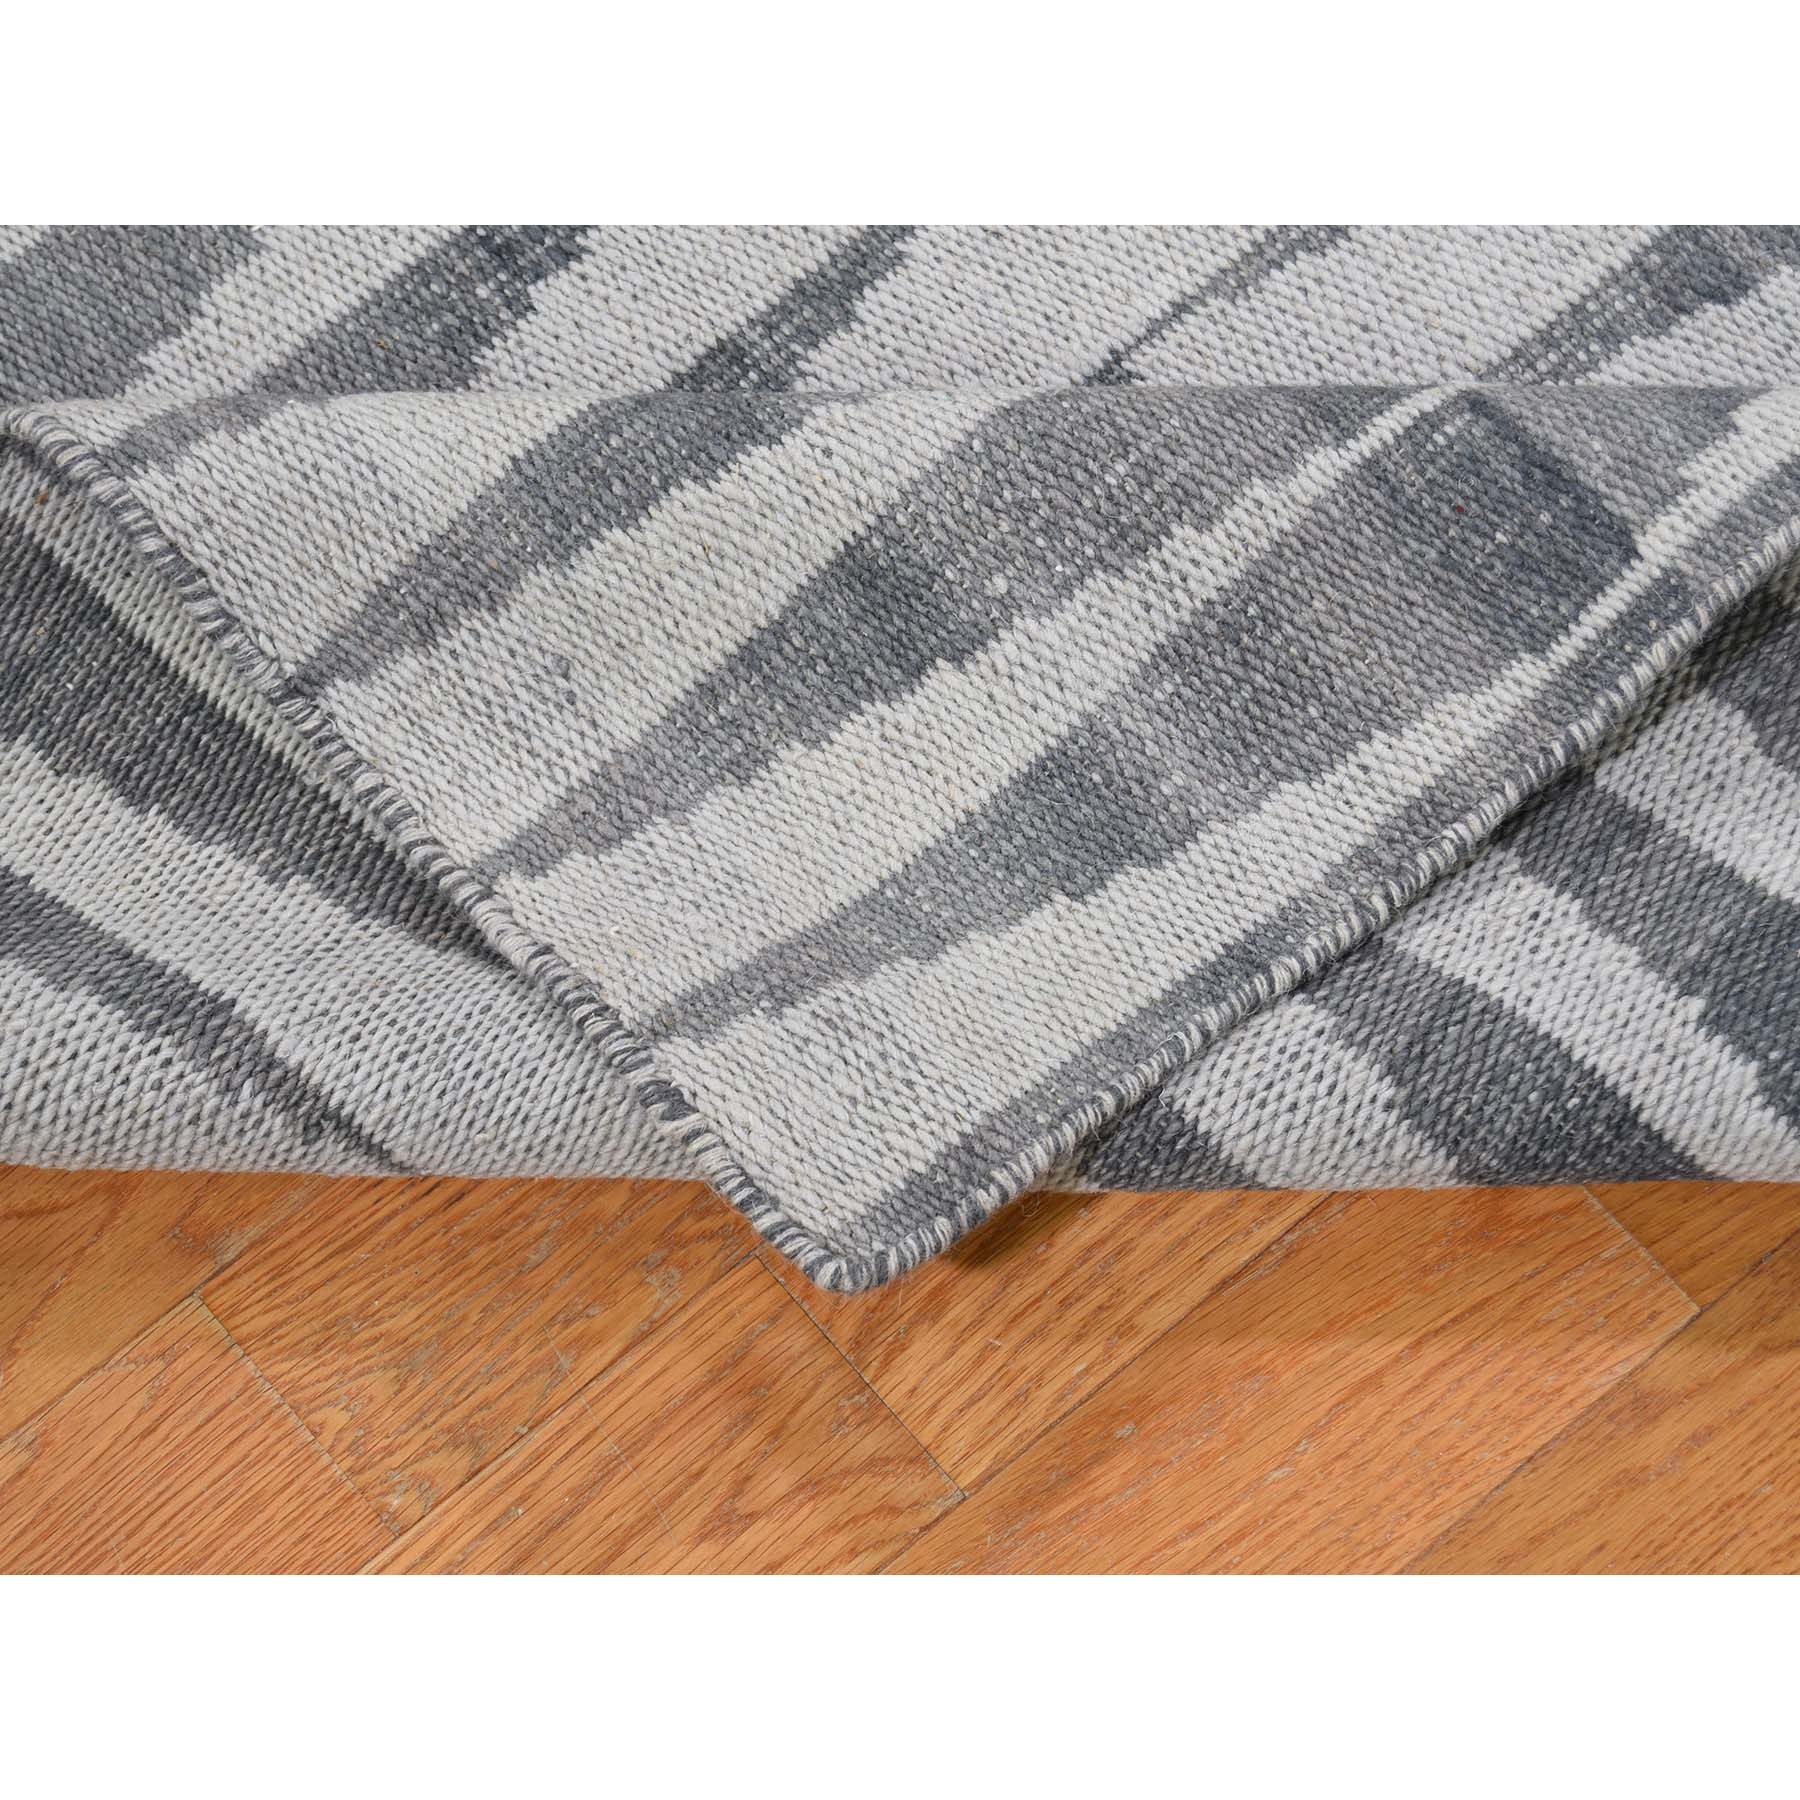 "2'7""x11'8"" Flat Weave Hand Woven Durie Kilim Reversible Oriental Rug"